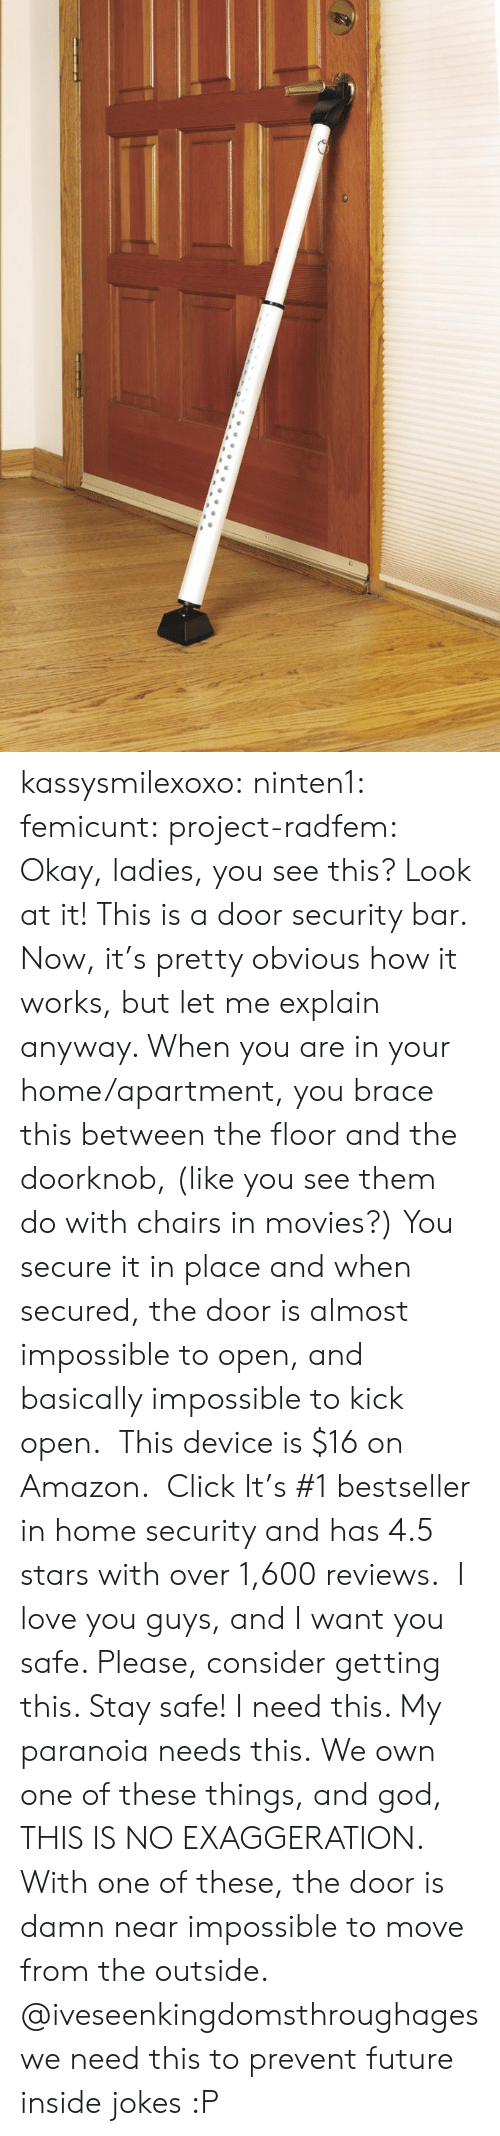 Amazon, Click, and Future: kassysmilexoxo:  ninten1:  femicunt:  project-radfem:   Okay, ladies, you see this? Look at it! This is a door security bar. Now, it's pretty obvious how it works, but let me explain anyway. When you are in your home/apartment, you brace this between the floor and the doorknob, (like you see them do with chairs in movies?) You secure it in place and when secured, the door is almost impossible to open, and basically impossible to kick open.  This device is $16 on Amazon.  Click It's #1 bestseller in home security and has 4.5 stars with over 1,600 reviews.  I love you guys, and I want you safe. Please, consider getting this. Stay safe!  I need this. My paranoia needs this.  We own one of these things, and god, THIS IS NO EXAGGERATION. With one of these, the door is damn near impossible to move from the outside.   @iveseenkingdomsthroughages we need this to prevent future inside jokes :P